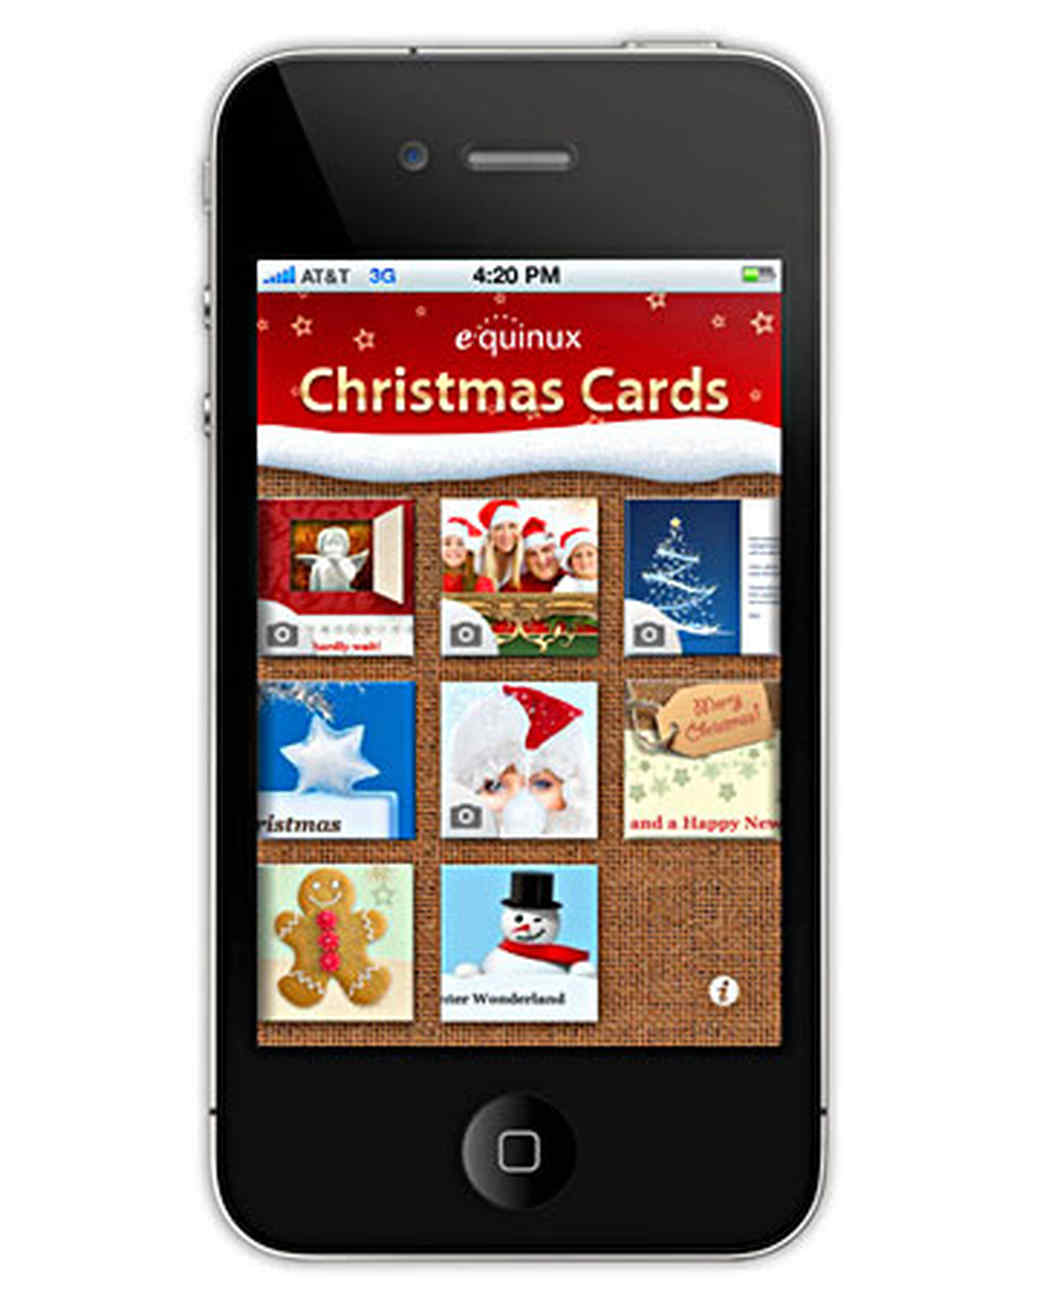 iphone_apps_christmas_cards.jpg